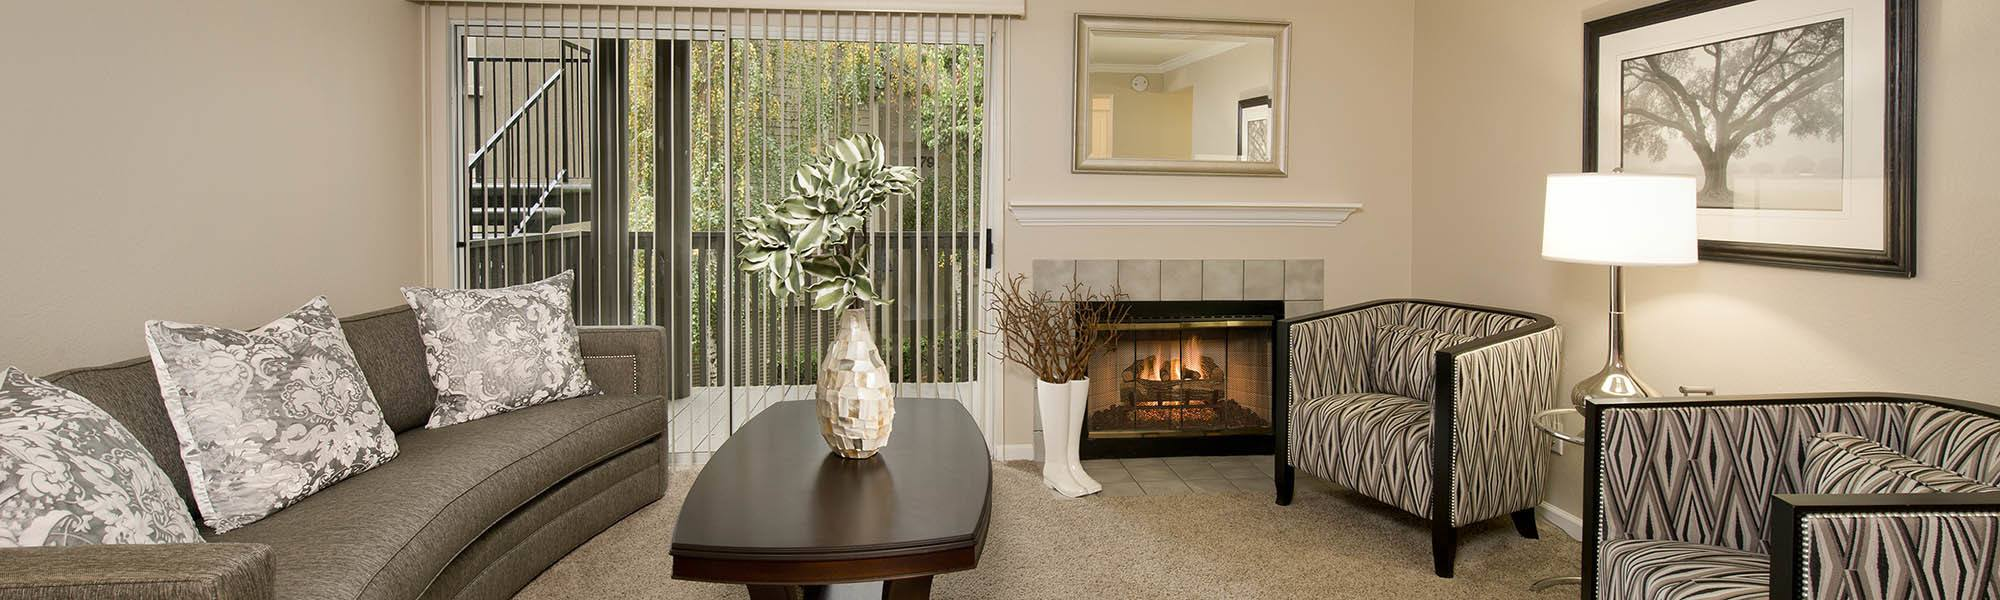 View our floor plans at Mill Springs Park Apartment Homes on our website